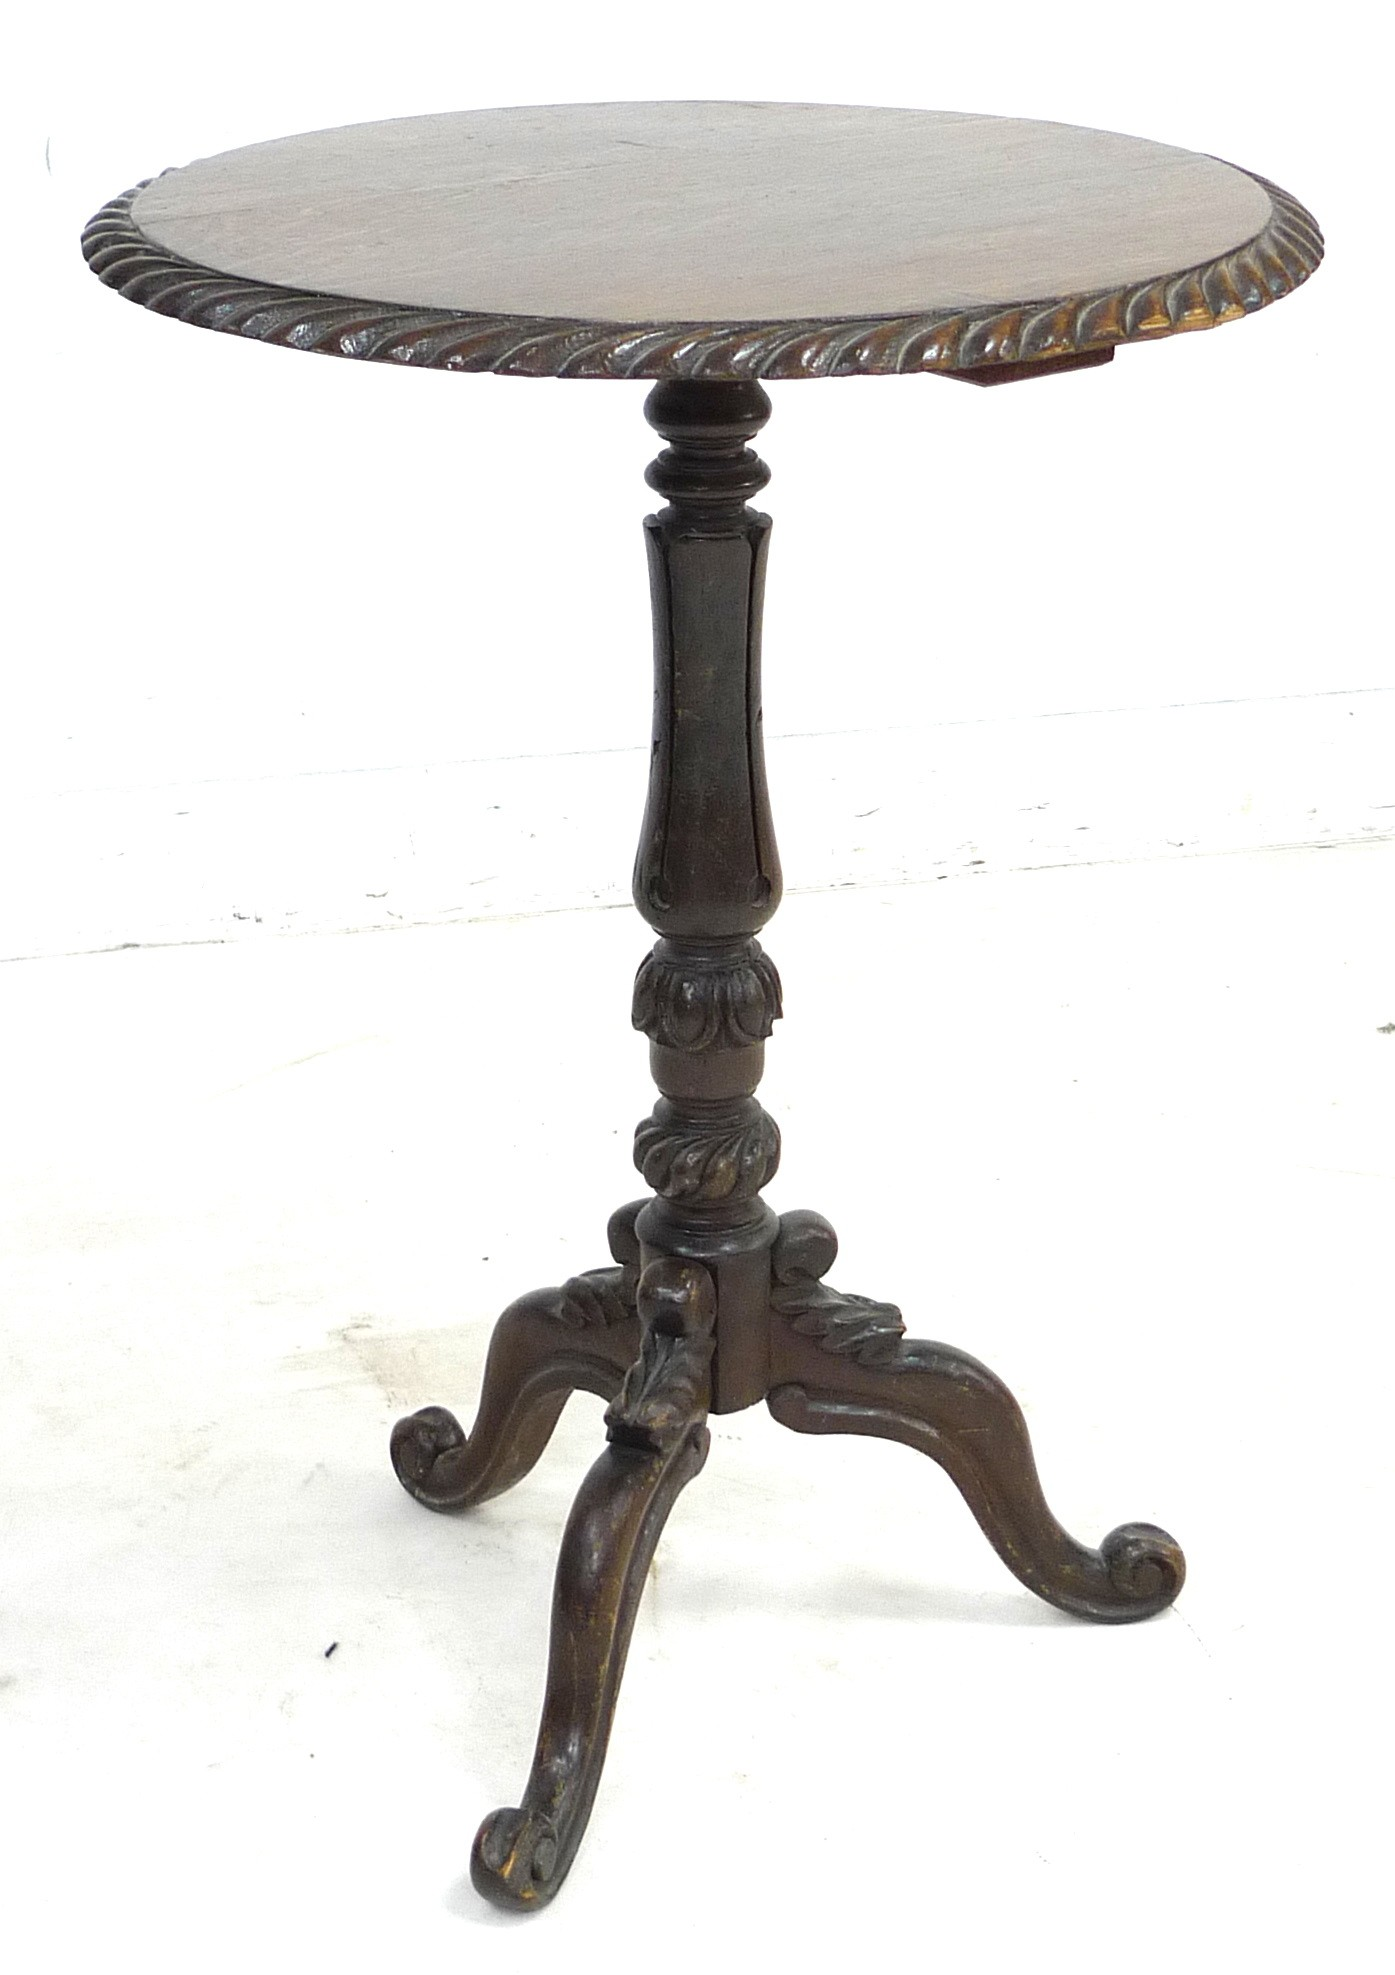 A late Victorian oak wine table, the circular surface with carved gadrooned edge, raised on a lappet